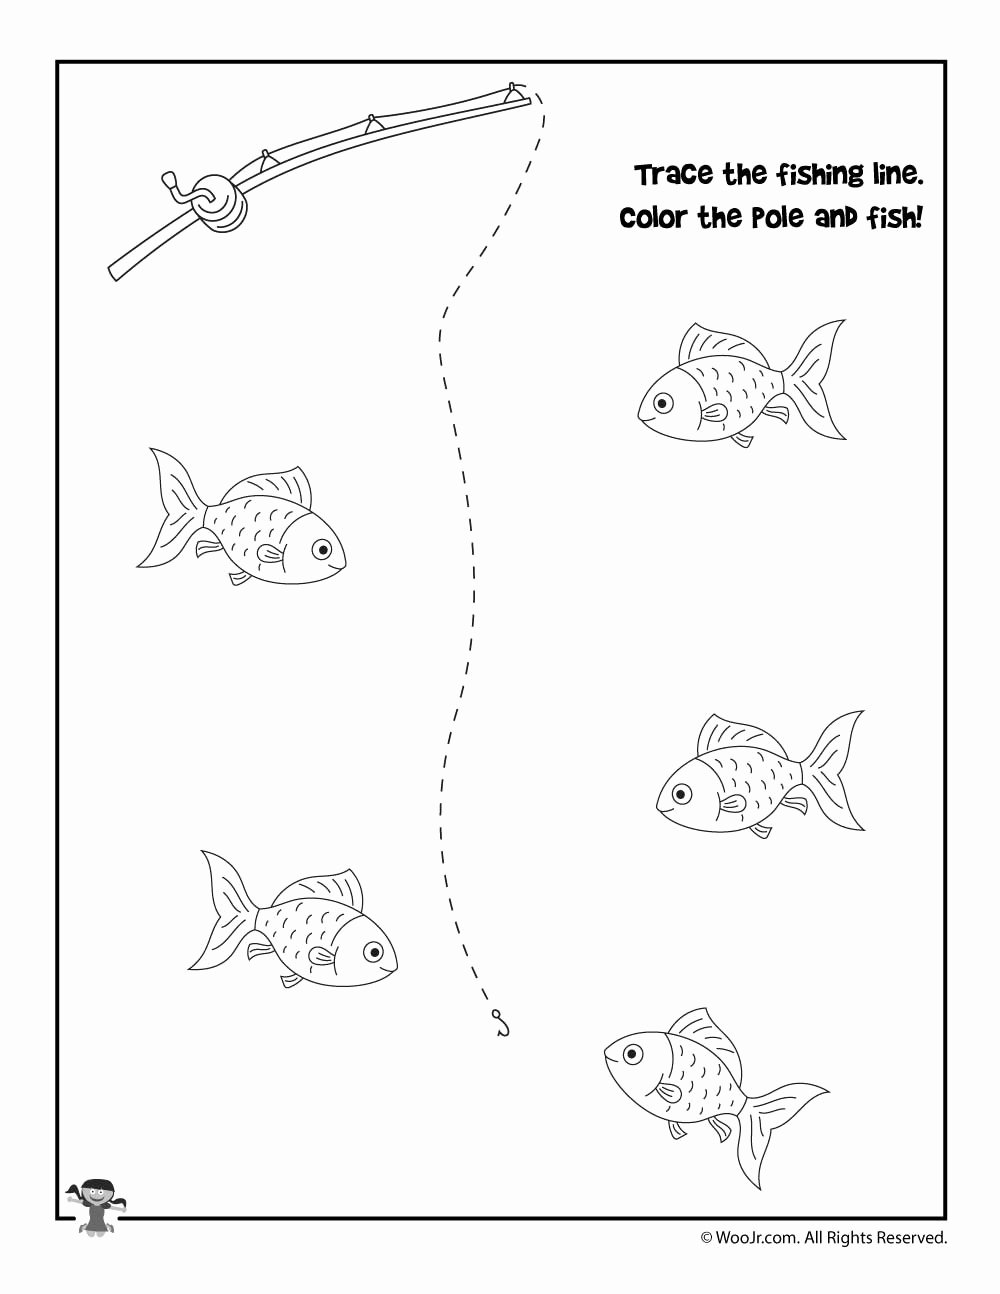 Fish Worksheets for Preschoolers Lovely Worksheet Printingactice Worksheets Fish Tracing Worksheet